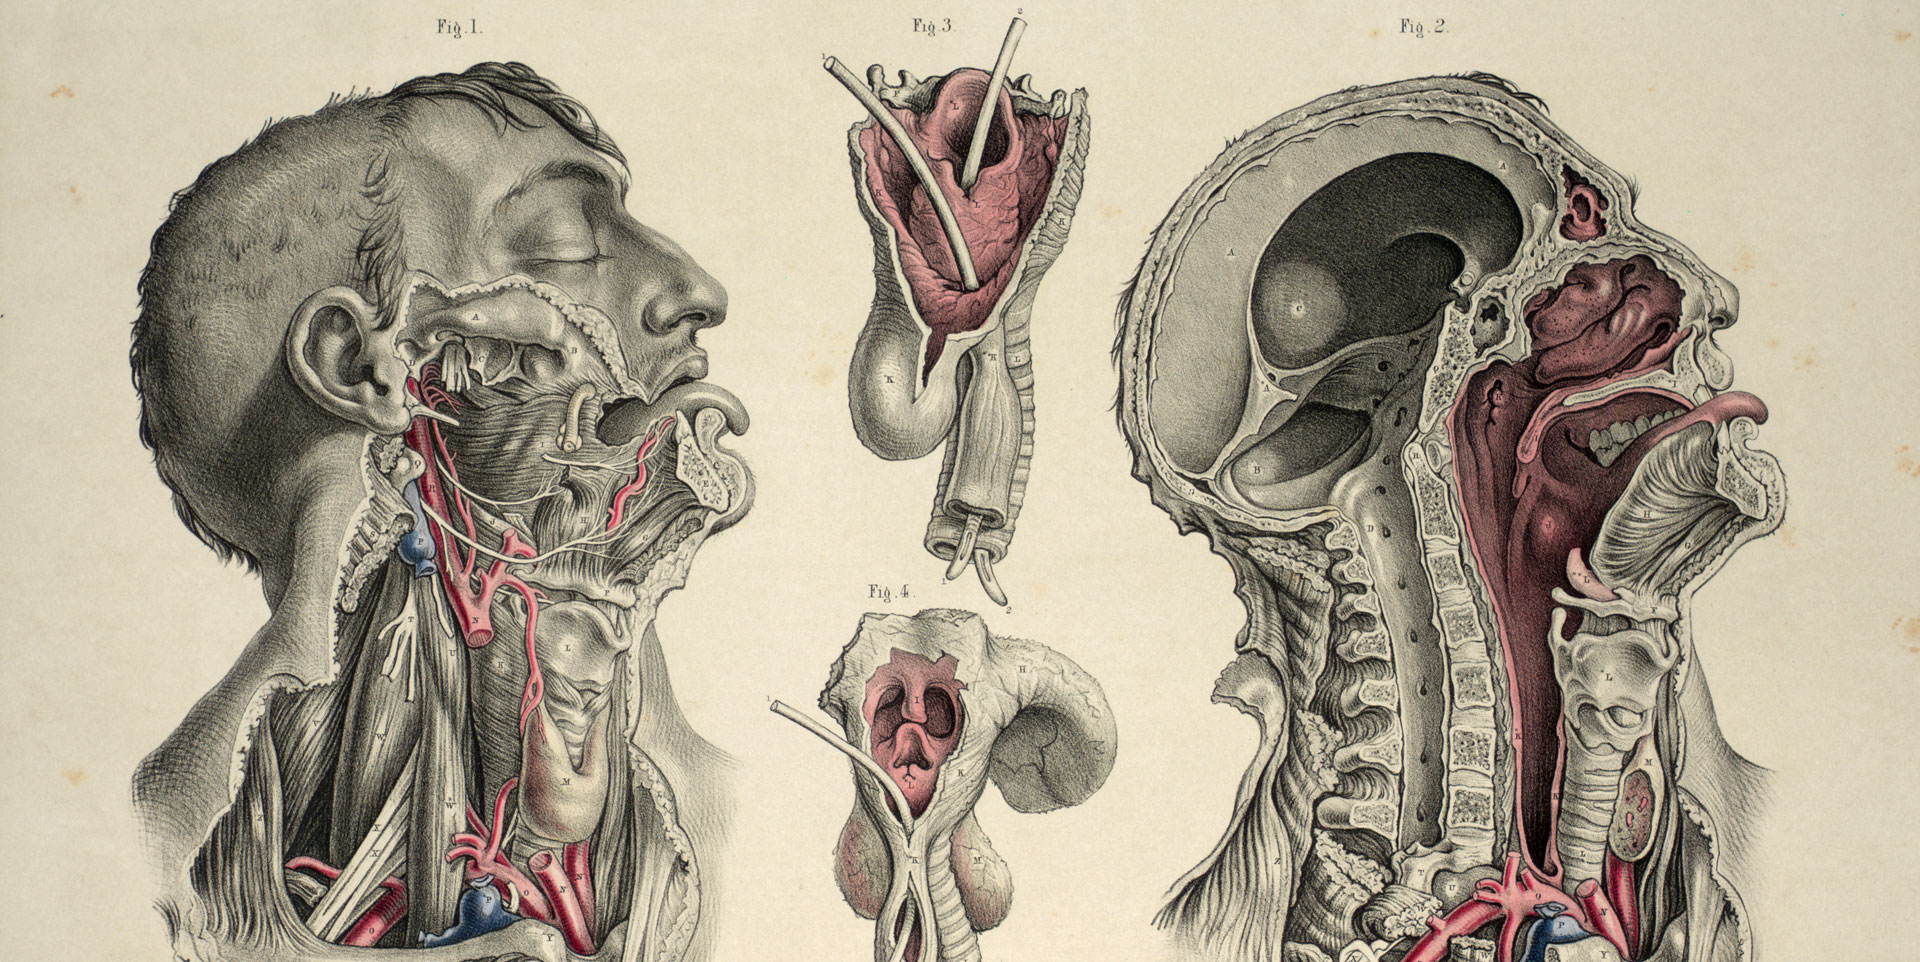 Dissection of the head, neck and pharynx.